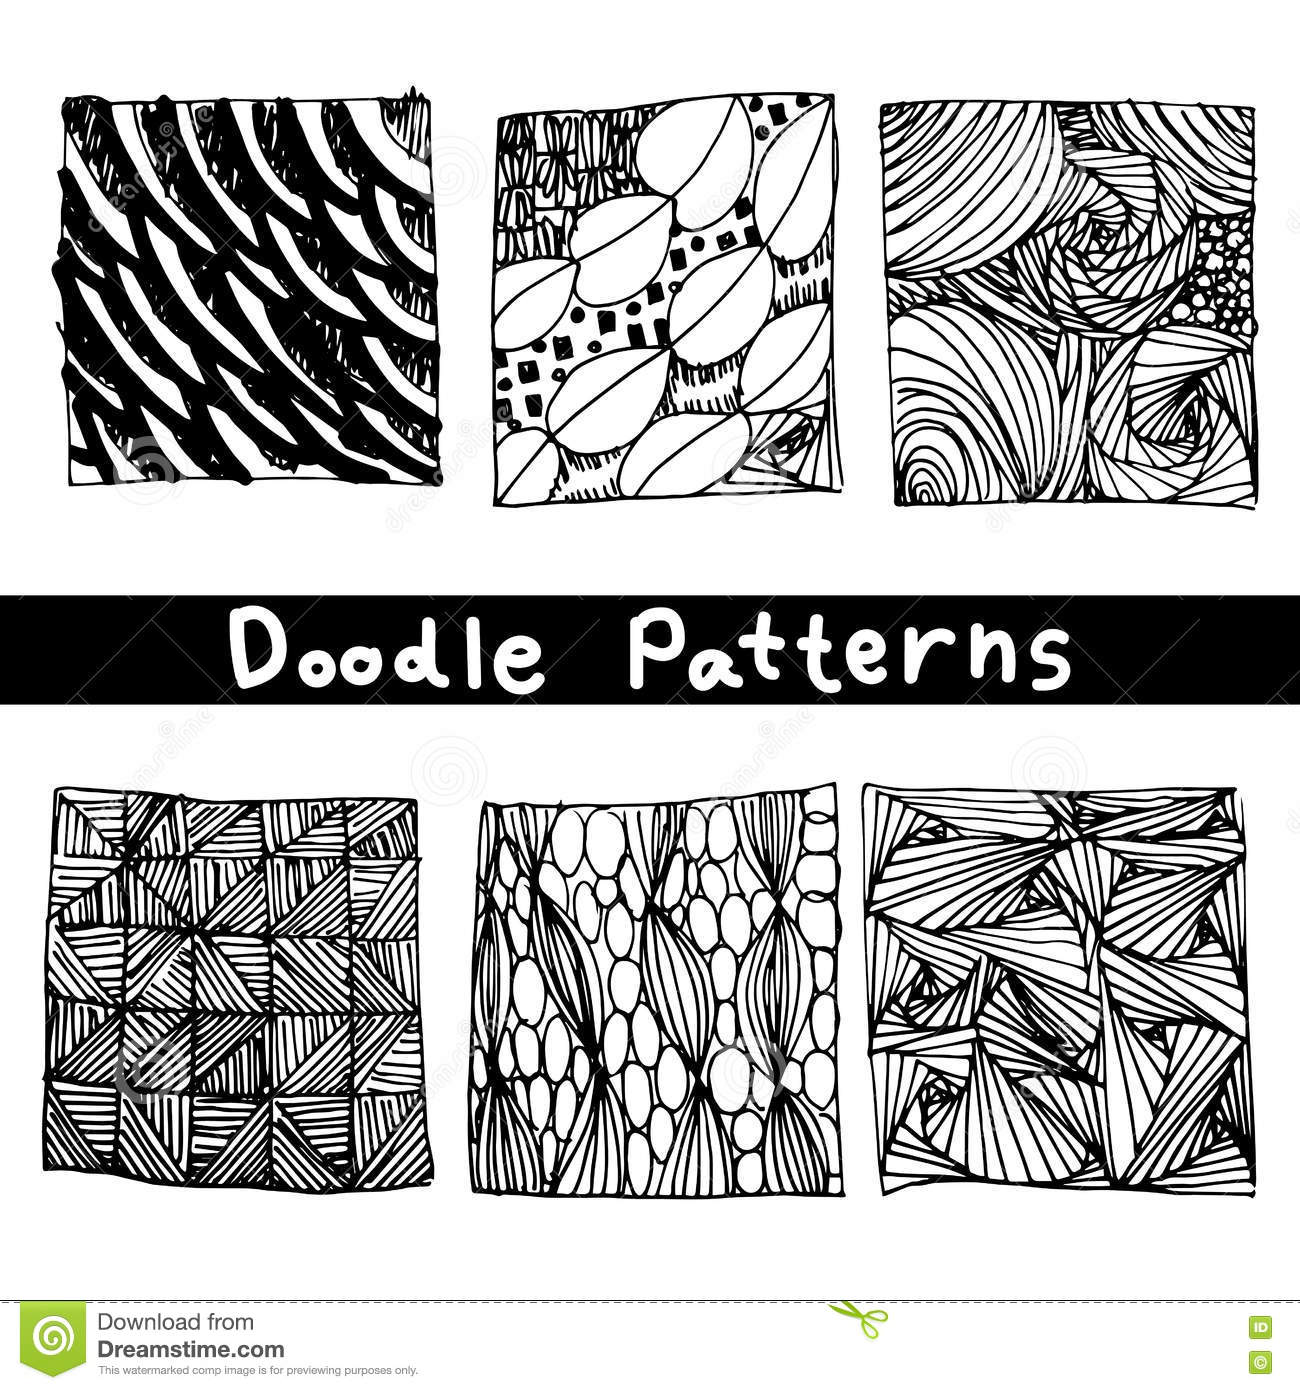 Basic Design Line : Doodle black line pattern background designs the art of